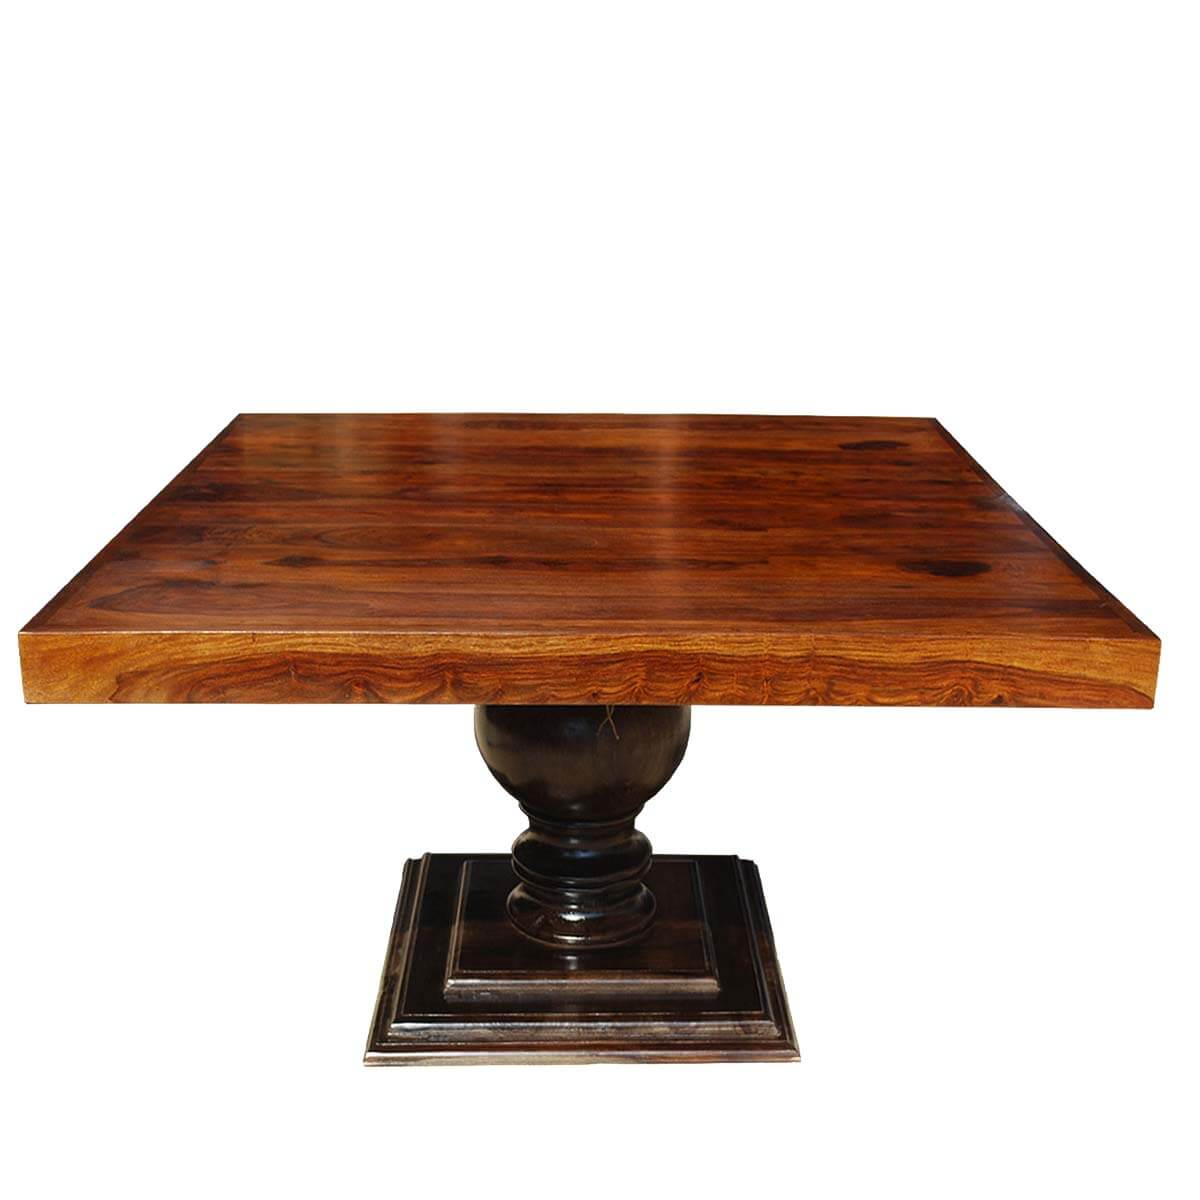 Minneapolis Rustic Solid Wood Fusion Pedestal Square  : 48351 from www.sierralivingconcepts.com size 1200 x 1200 jpeg 84kB